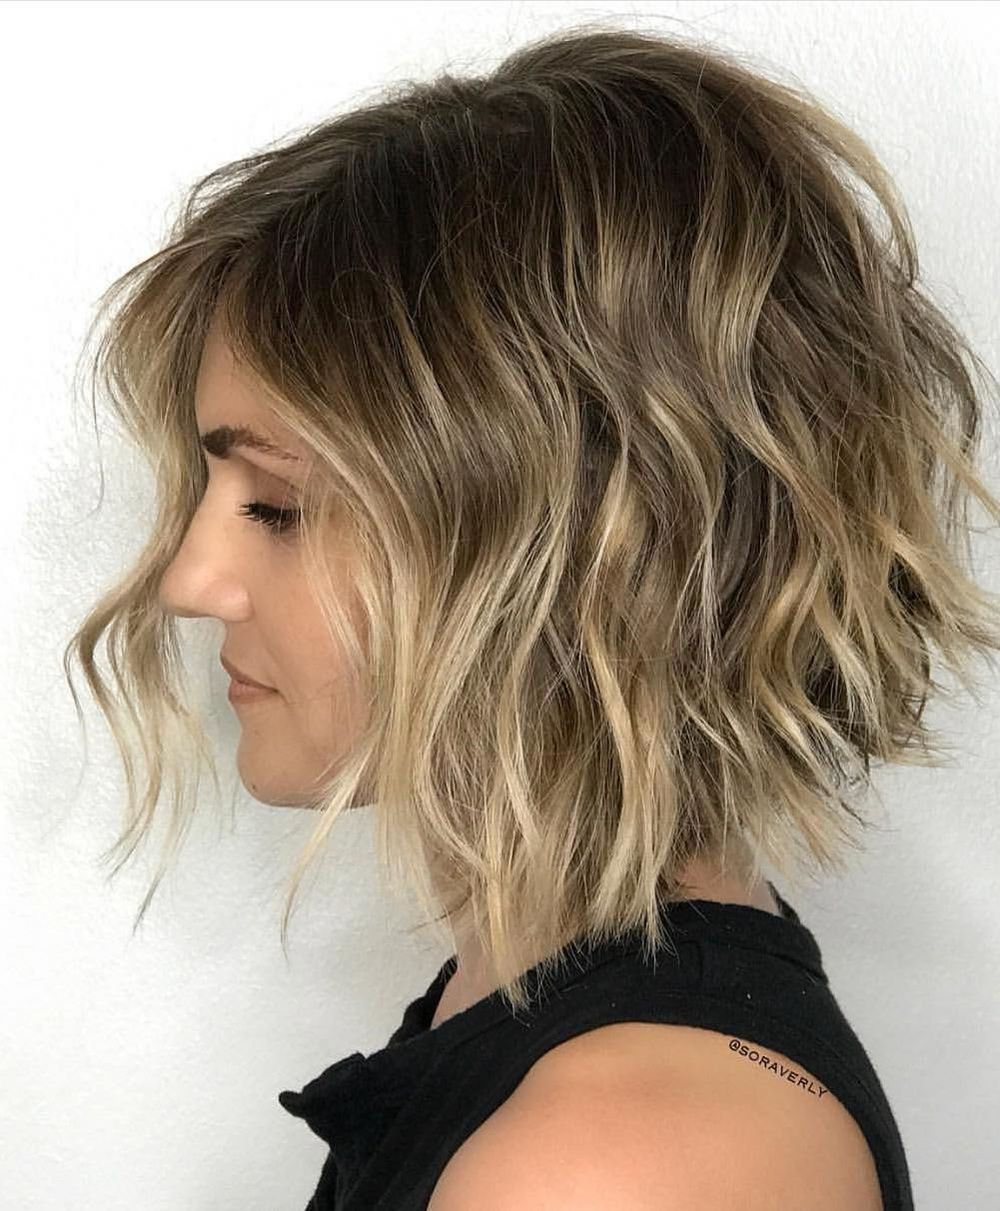 12 Gorgeous Wavy Bob Hairstyles with an Extra Touch of Femininity ...